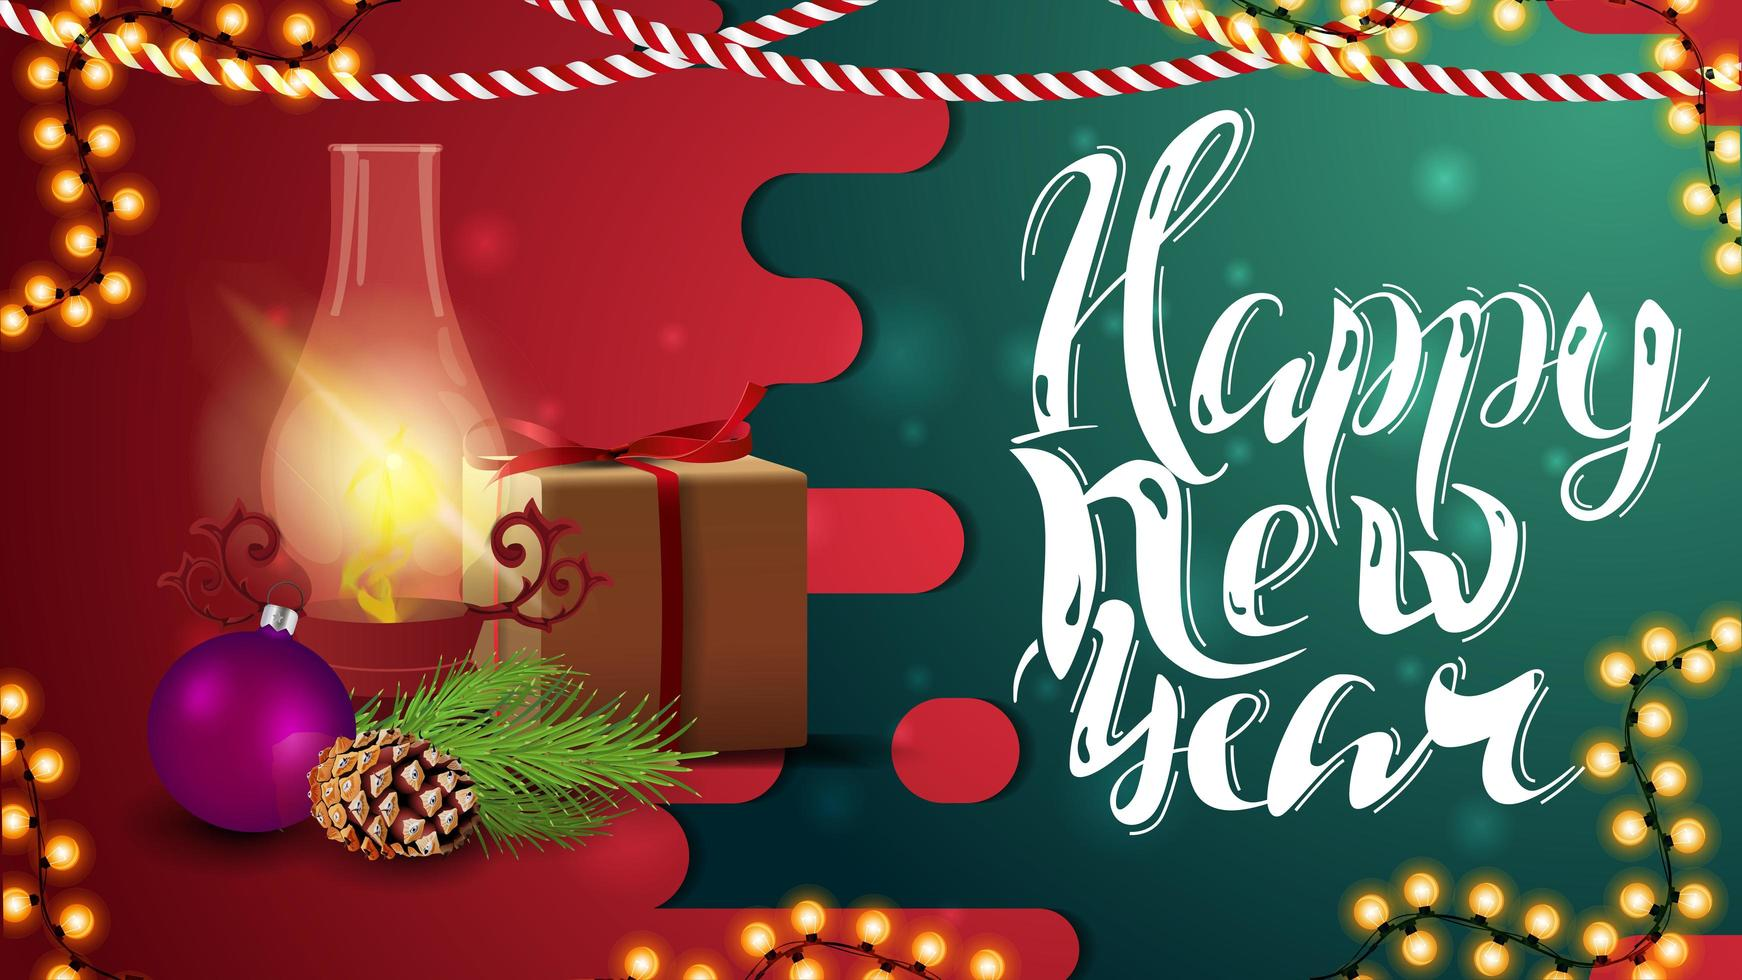 Happy New Year, red and green horizontal greeting card with gift, antique lamp, Christmas tree branch, cone and Christmas ball vector